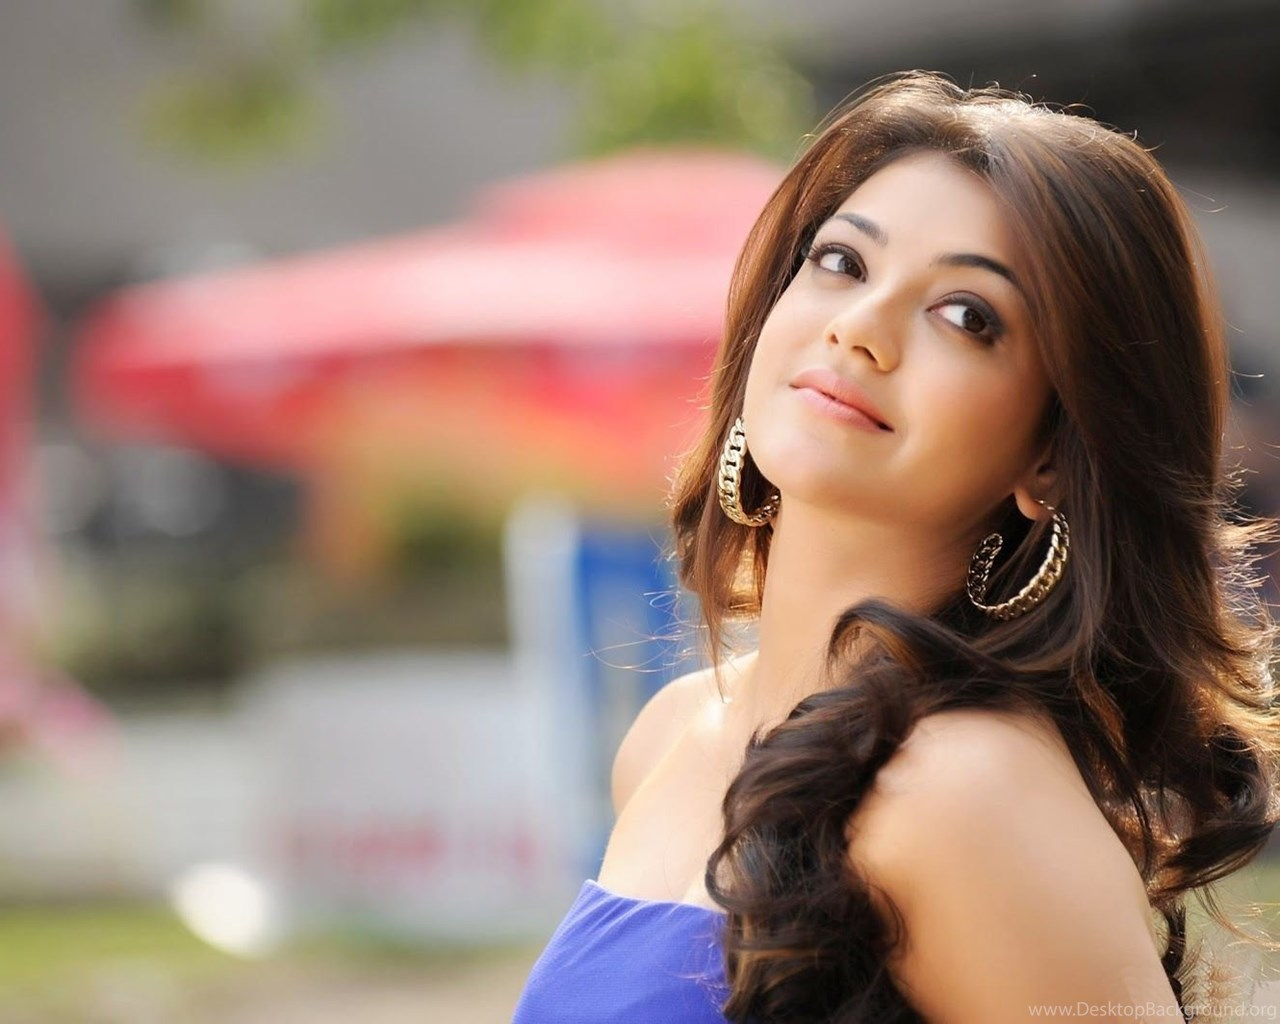 free download wallpapers hd : kajal agarwal hot hd wallpapers